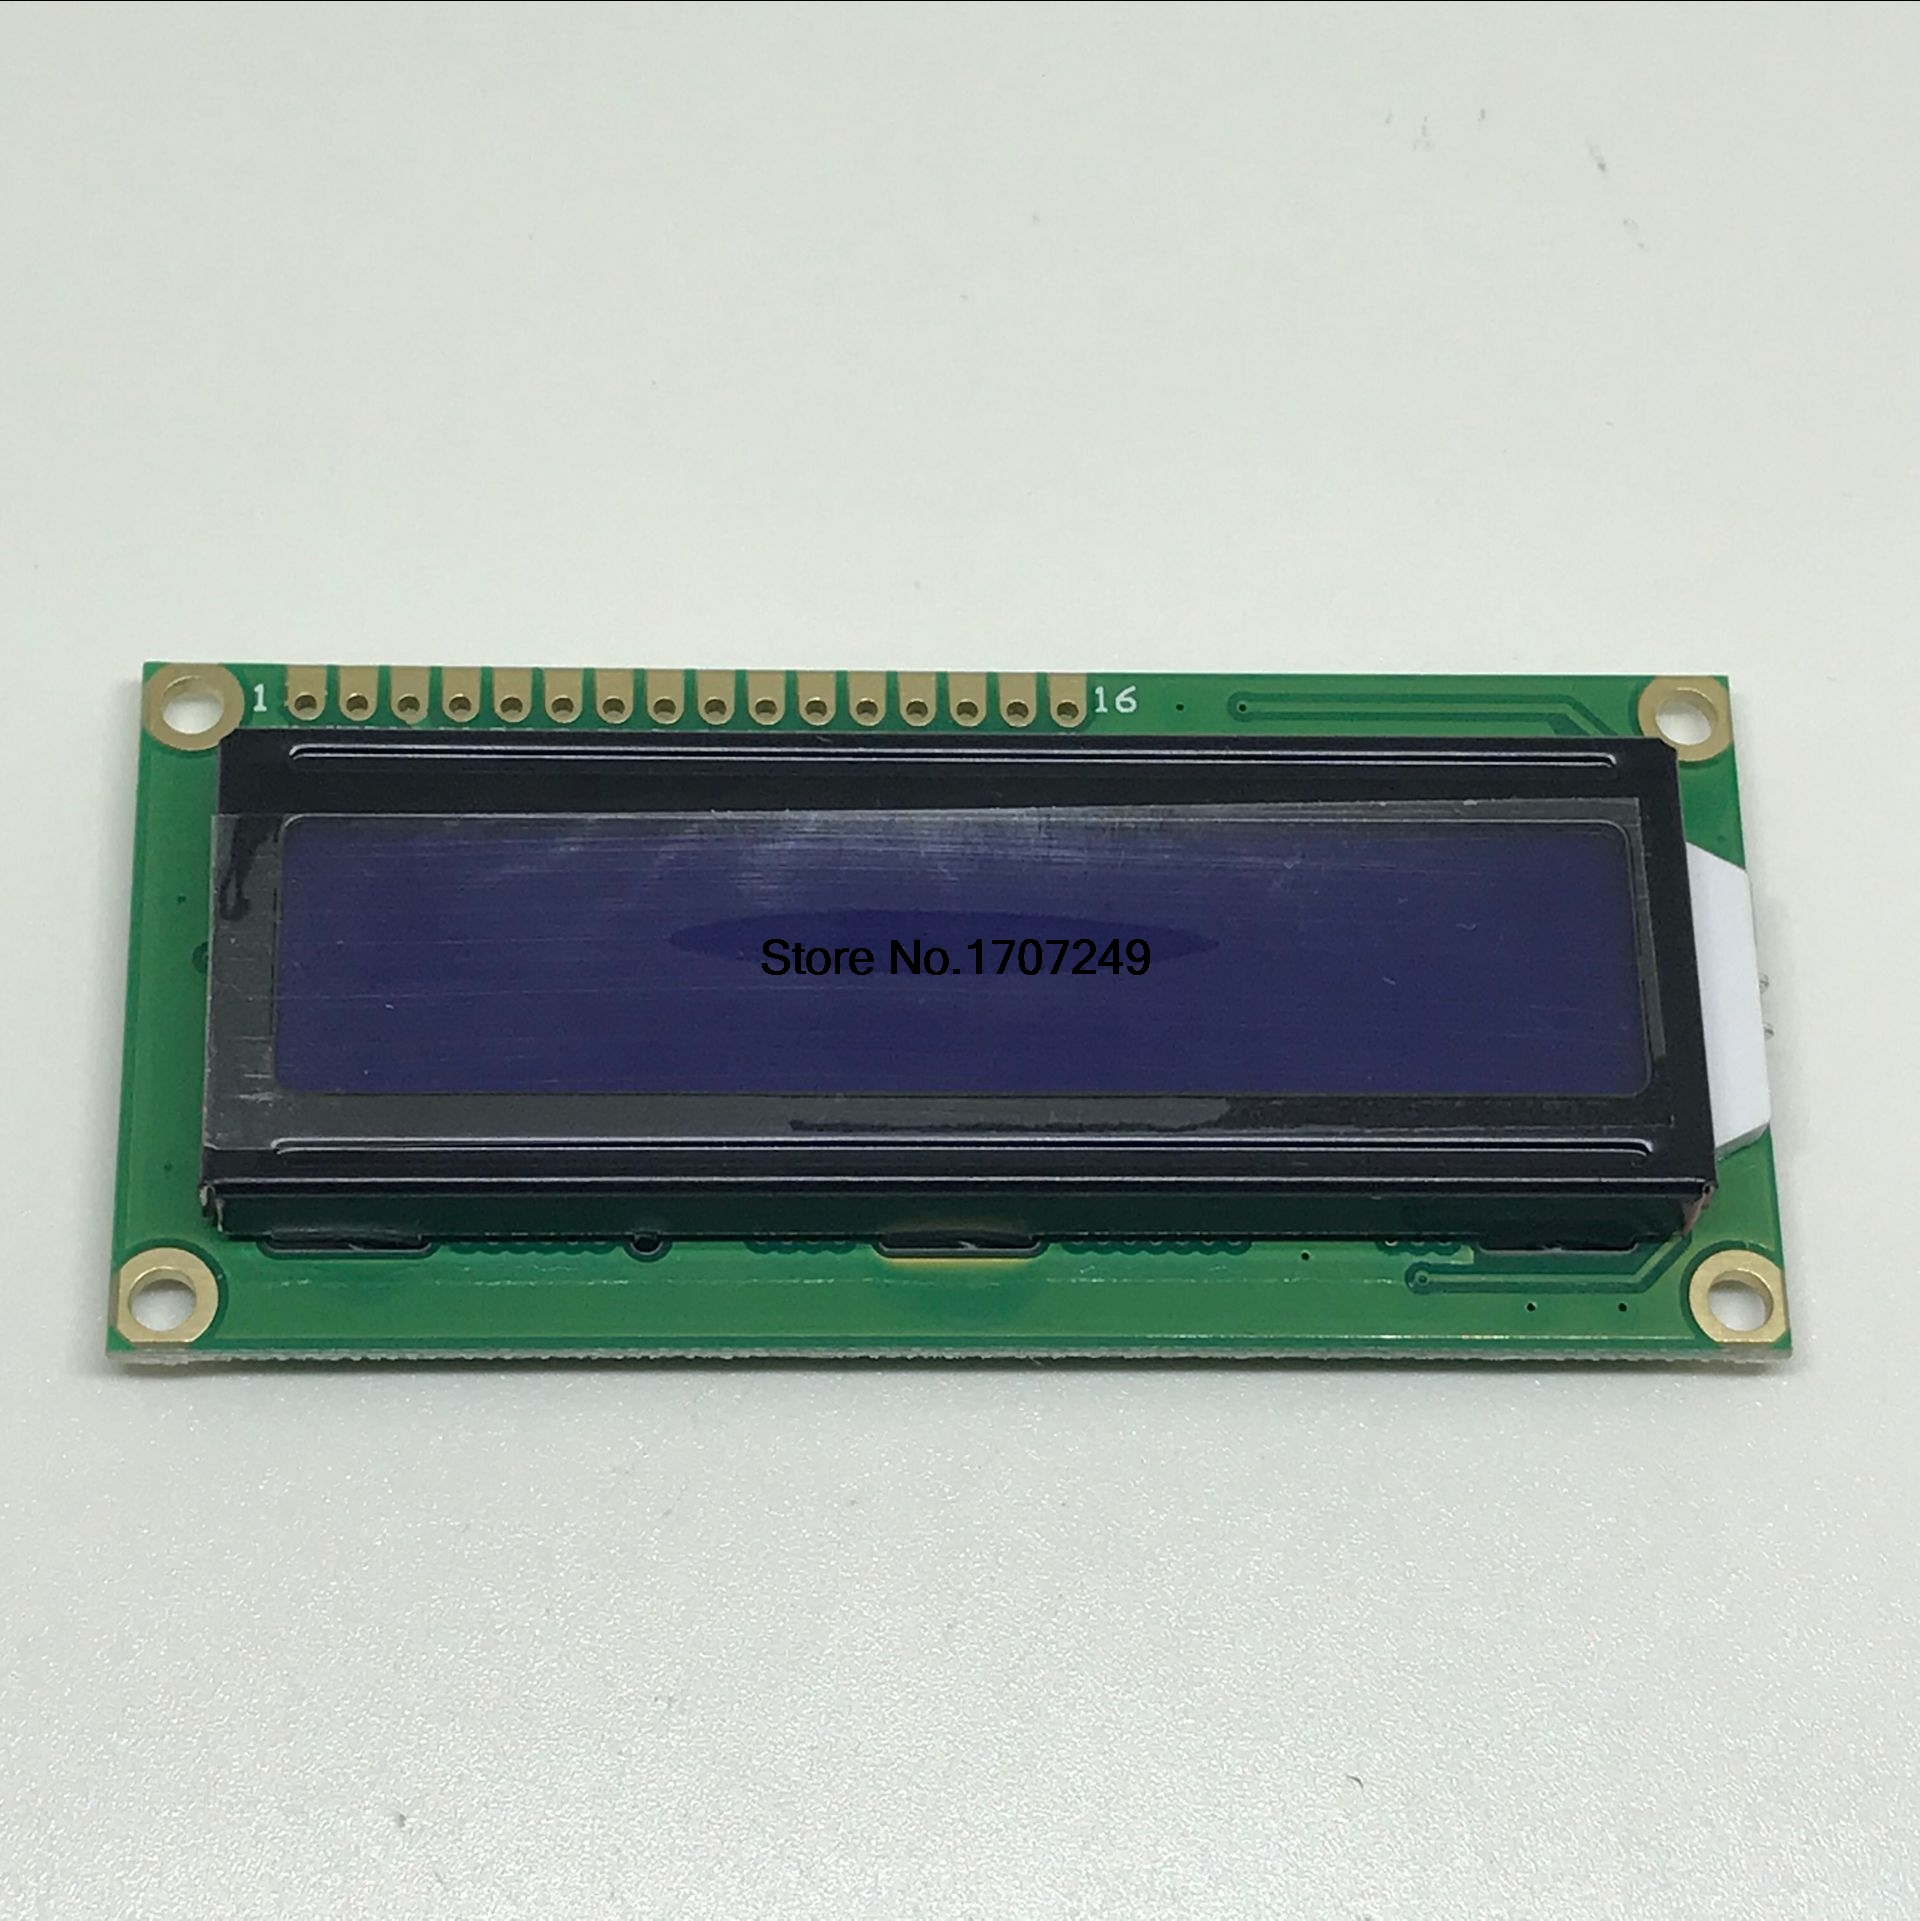 Free Shipping 1pcs LCD1602 LCD monitor 16x2 Character LCD Display <font><b>Module</b></font> 1602 5V blue screen and white code for arduino image